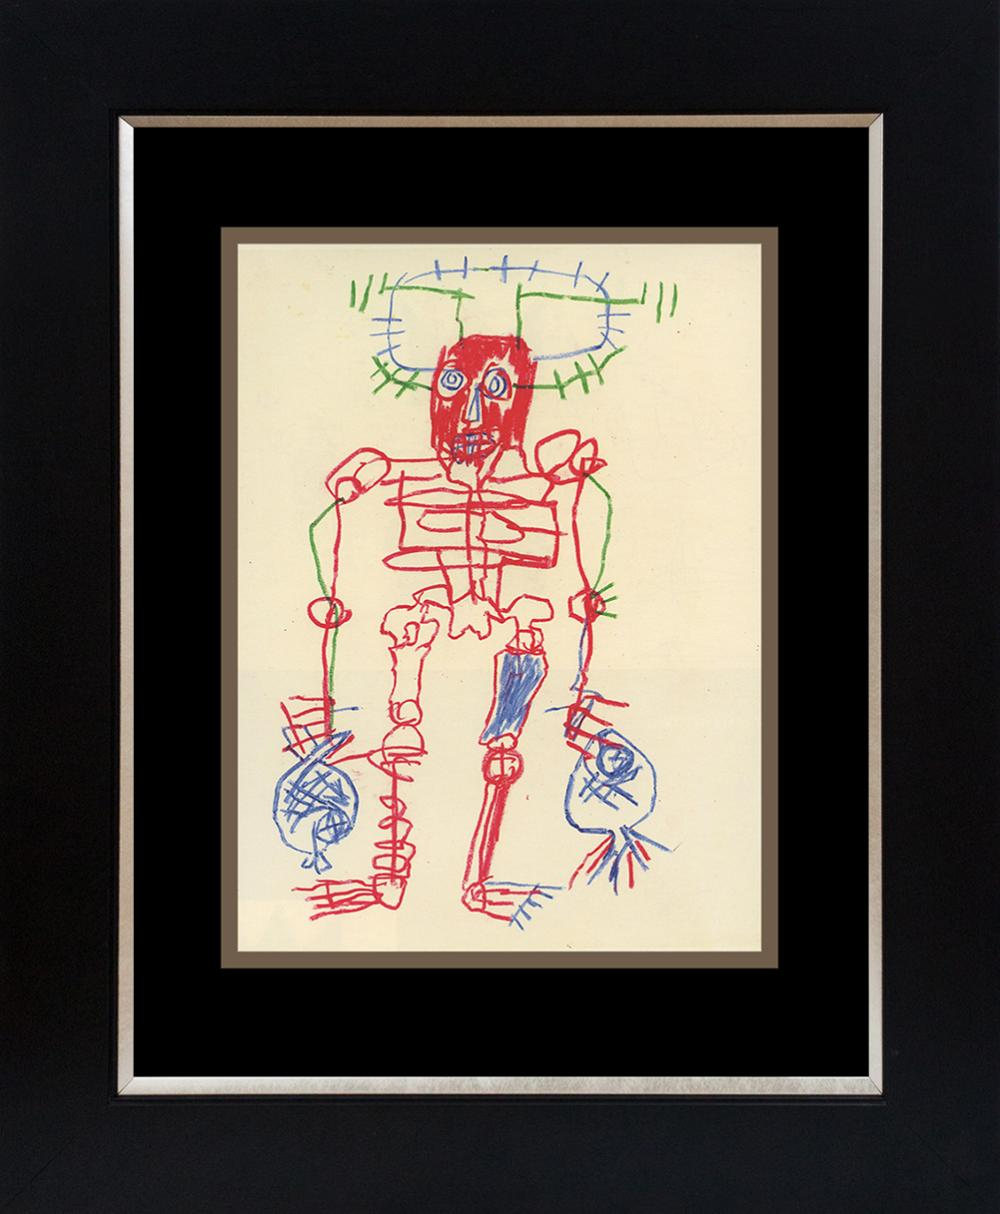 Lot 3170: Jean Michel Basquiat Lithograph from 1983